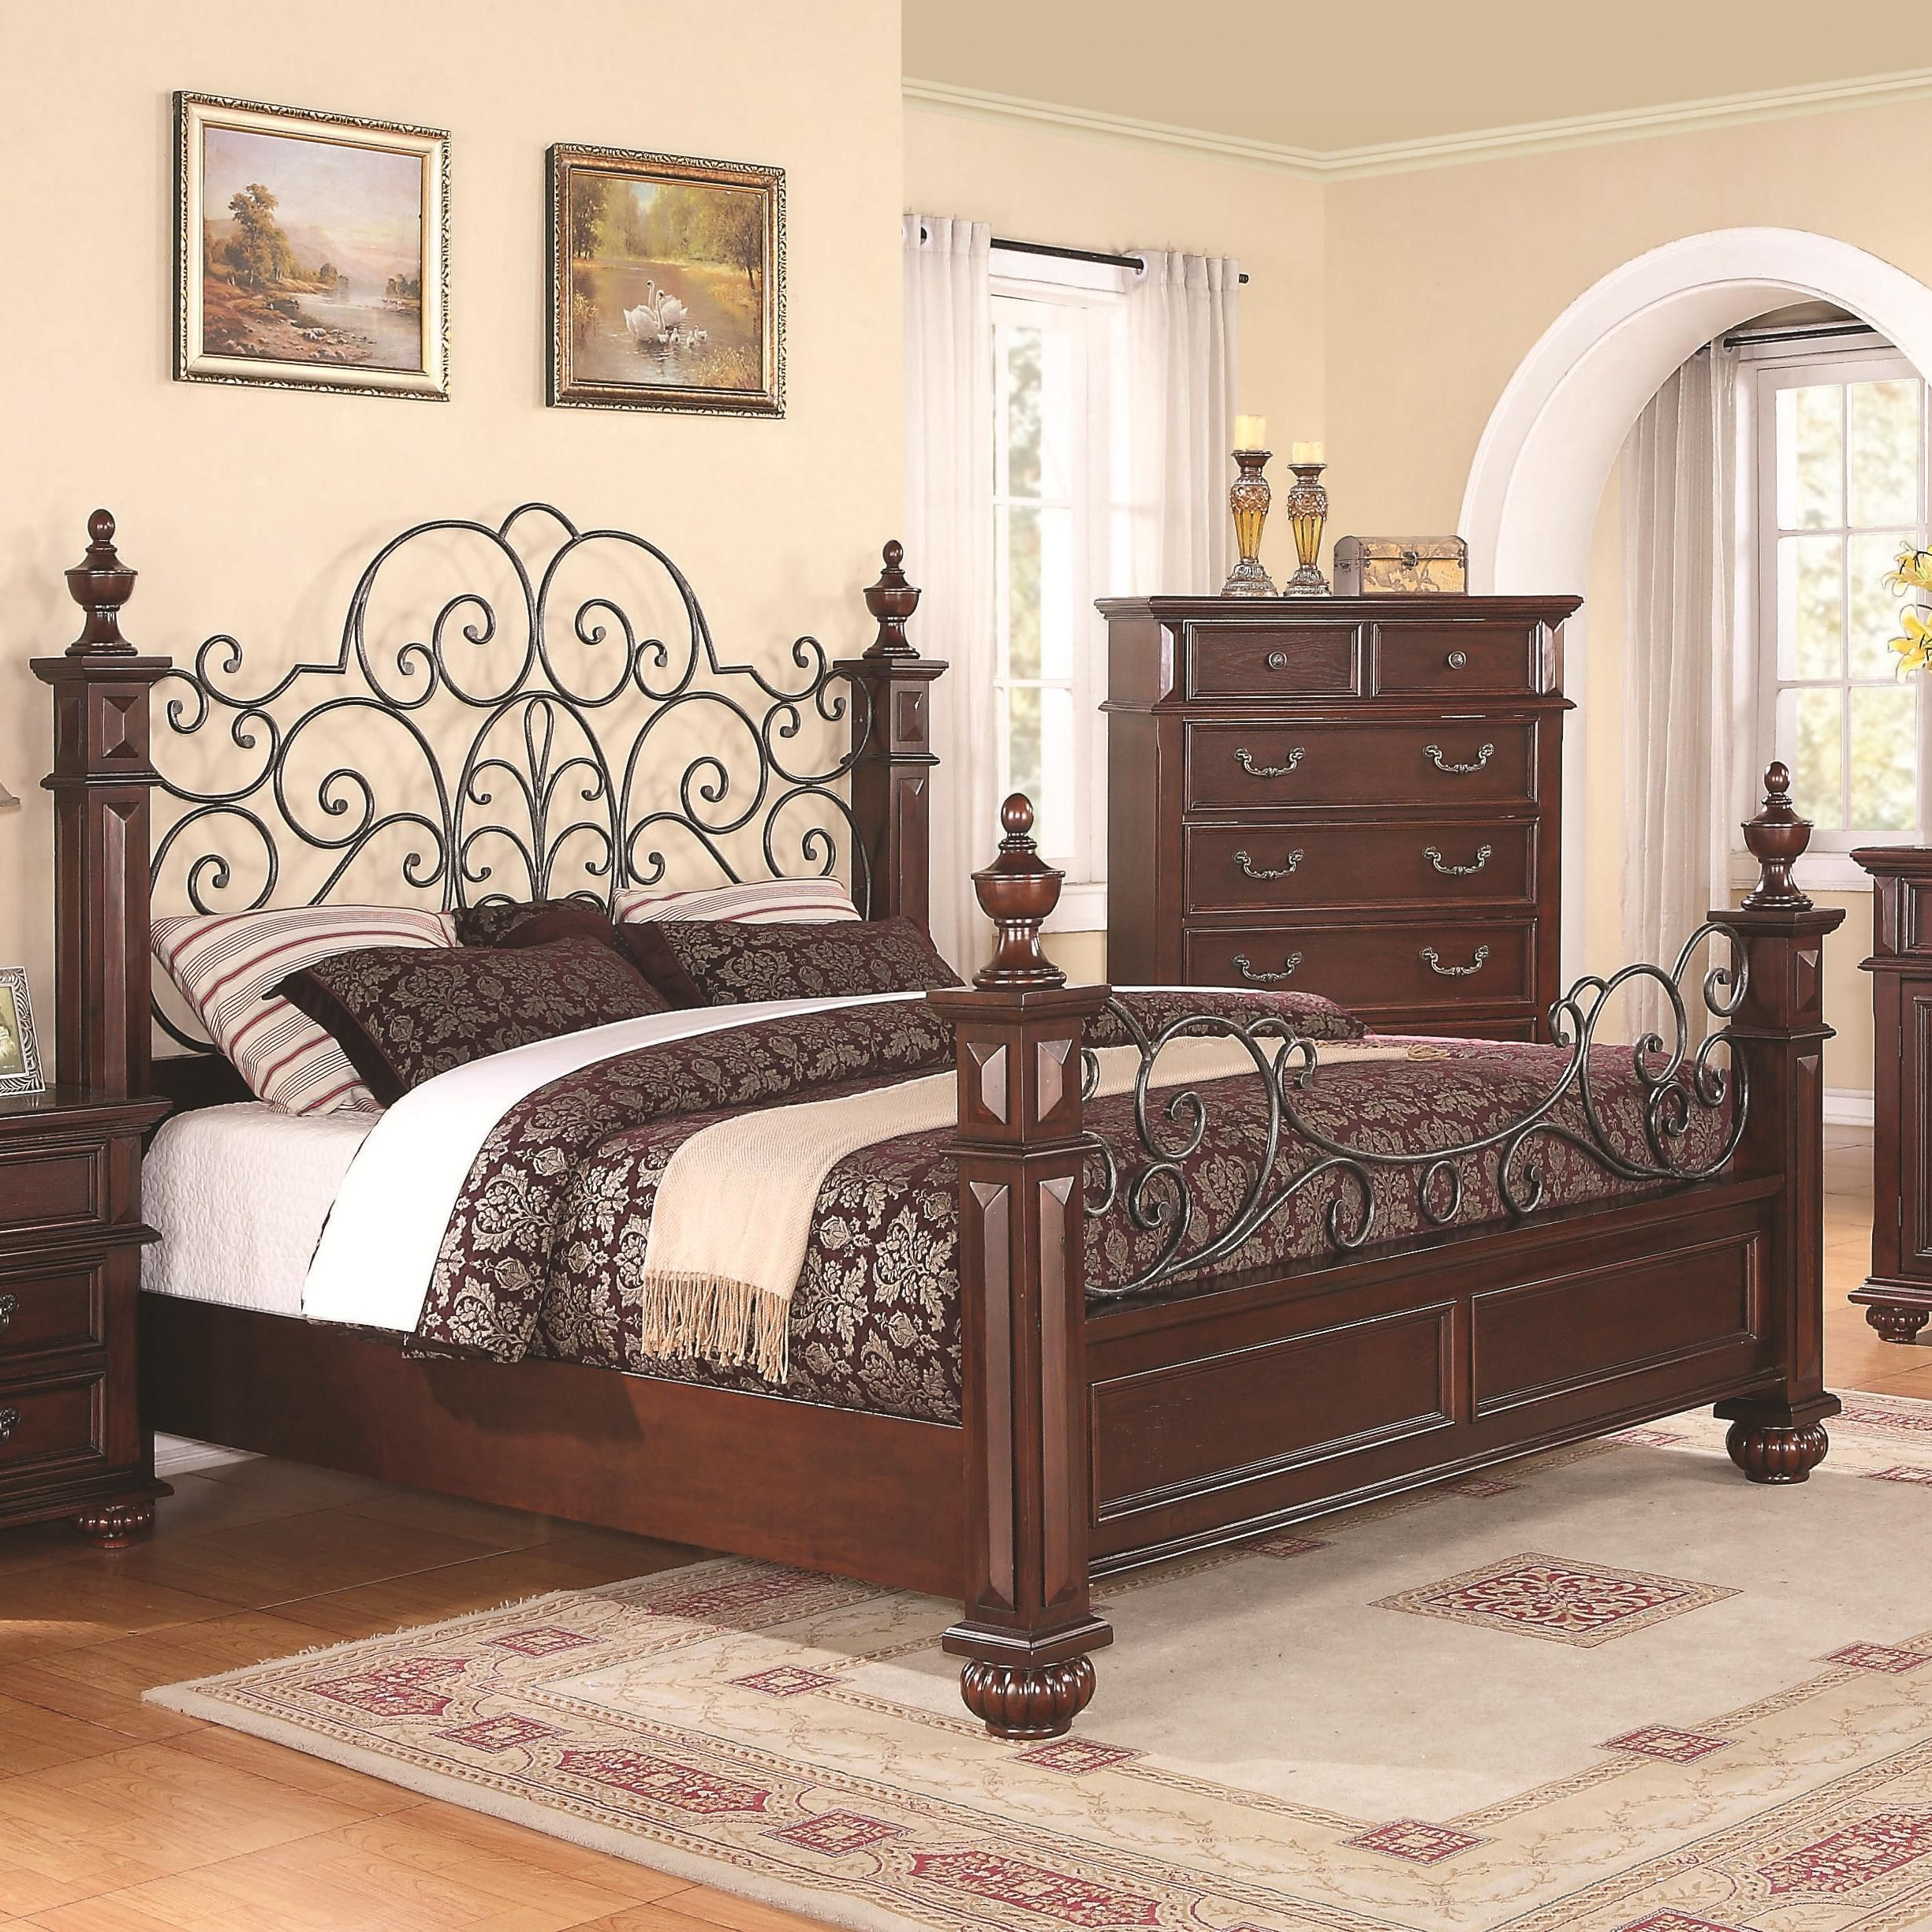 Low wood wrought iron king size bed dream home for Metal bedroom furniture